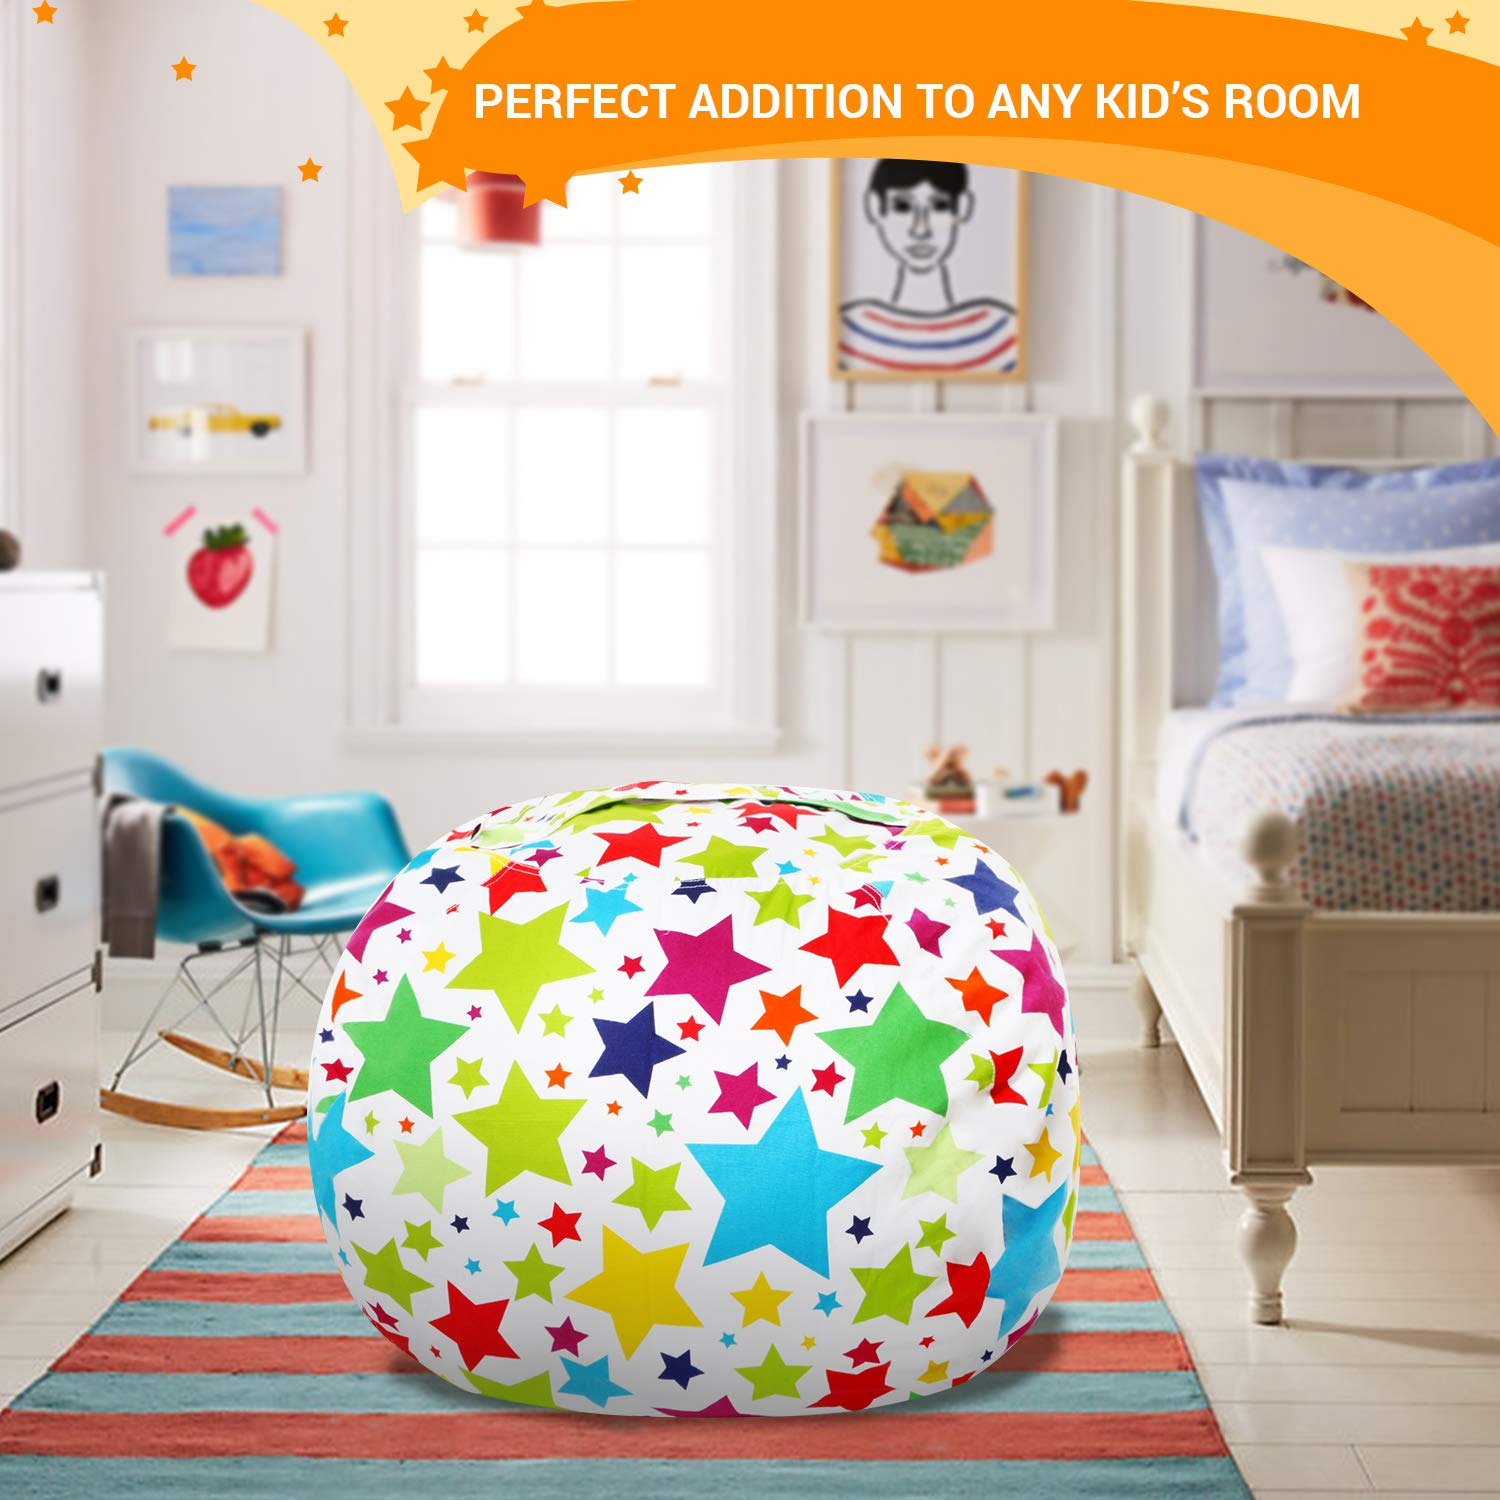 Stuffed Animal Storage Bean Bag - Cover Only - Large Beanbag Chairs for Kids - 90+ Plush Toys Holder and Organizer for Boys and Girls - 100% Cotton Canvas - Holiday Stars by 5 STARS UNITED (Image #8)